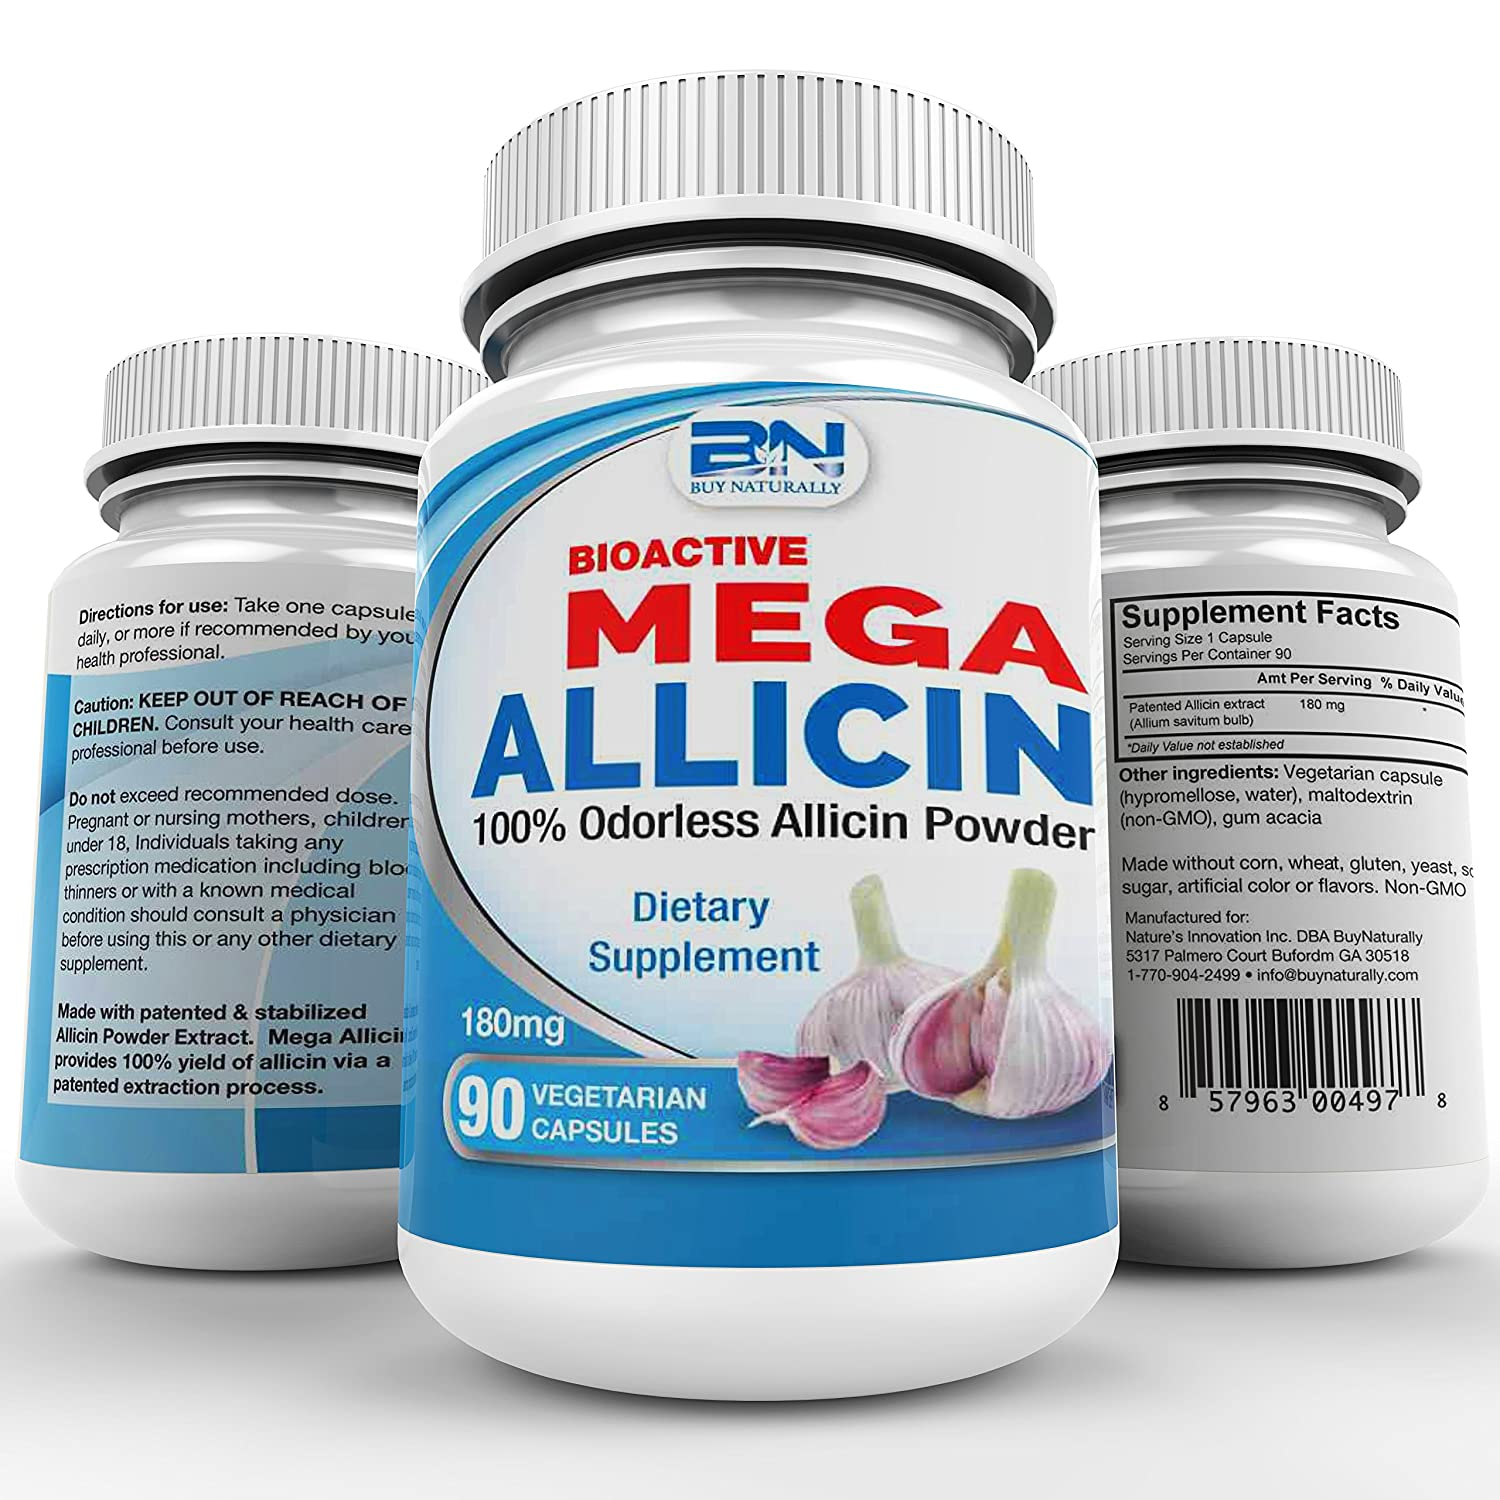 Mega Allicin 100 Allicin from Garlic 180mg, 90 count vCaps, Odorless, Non-GMO, and Gluten-Free 90 Count